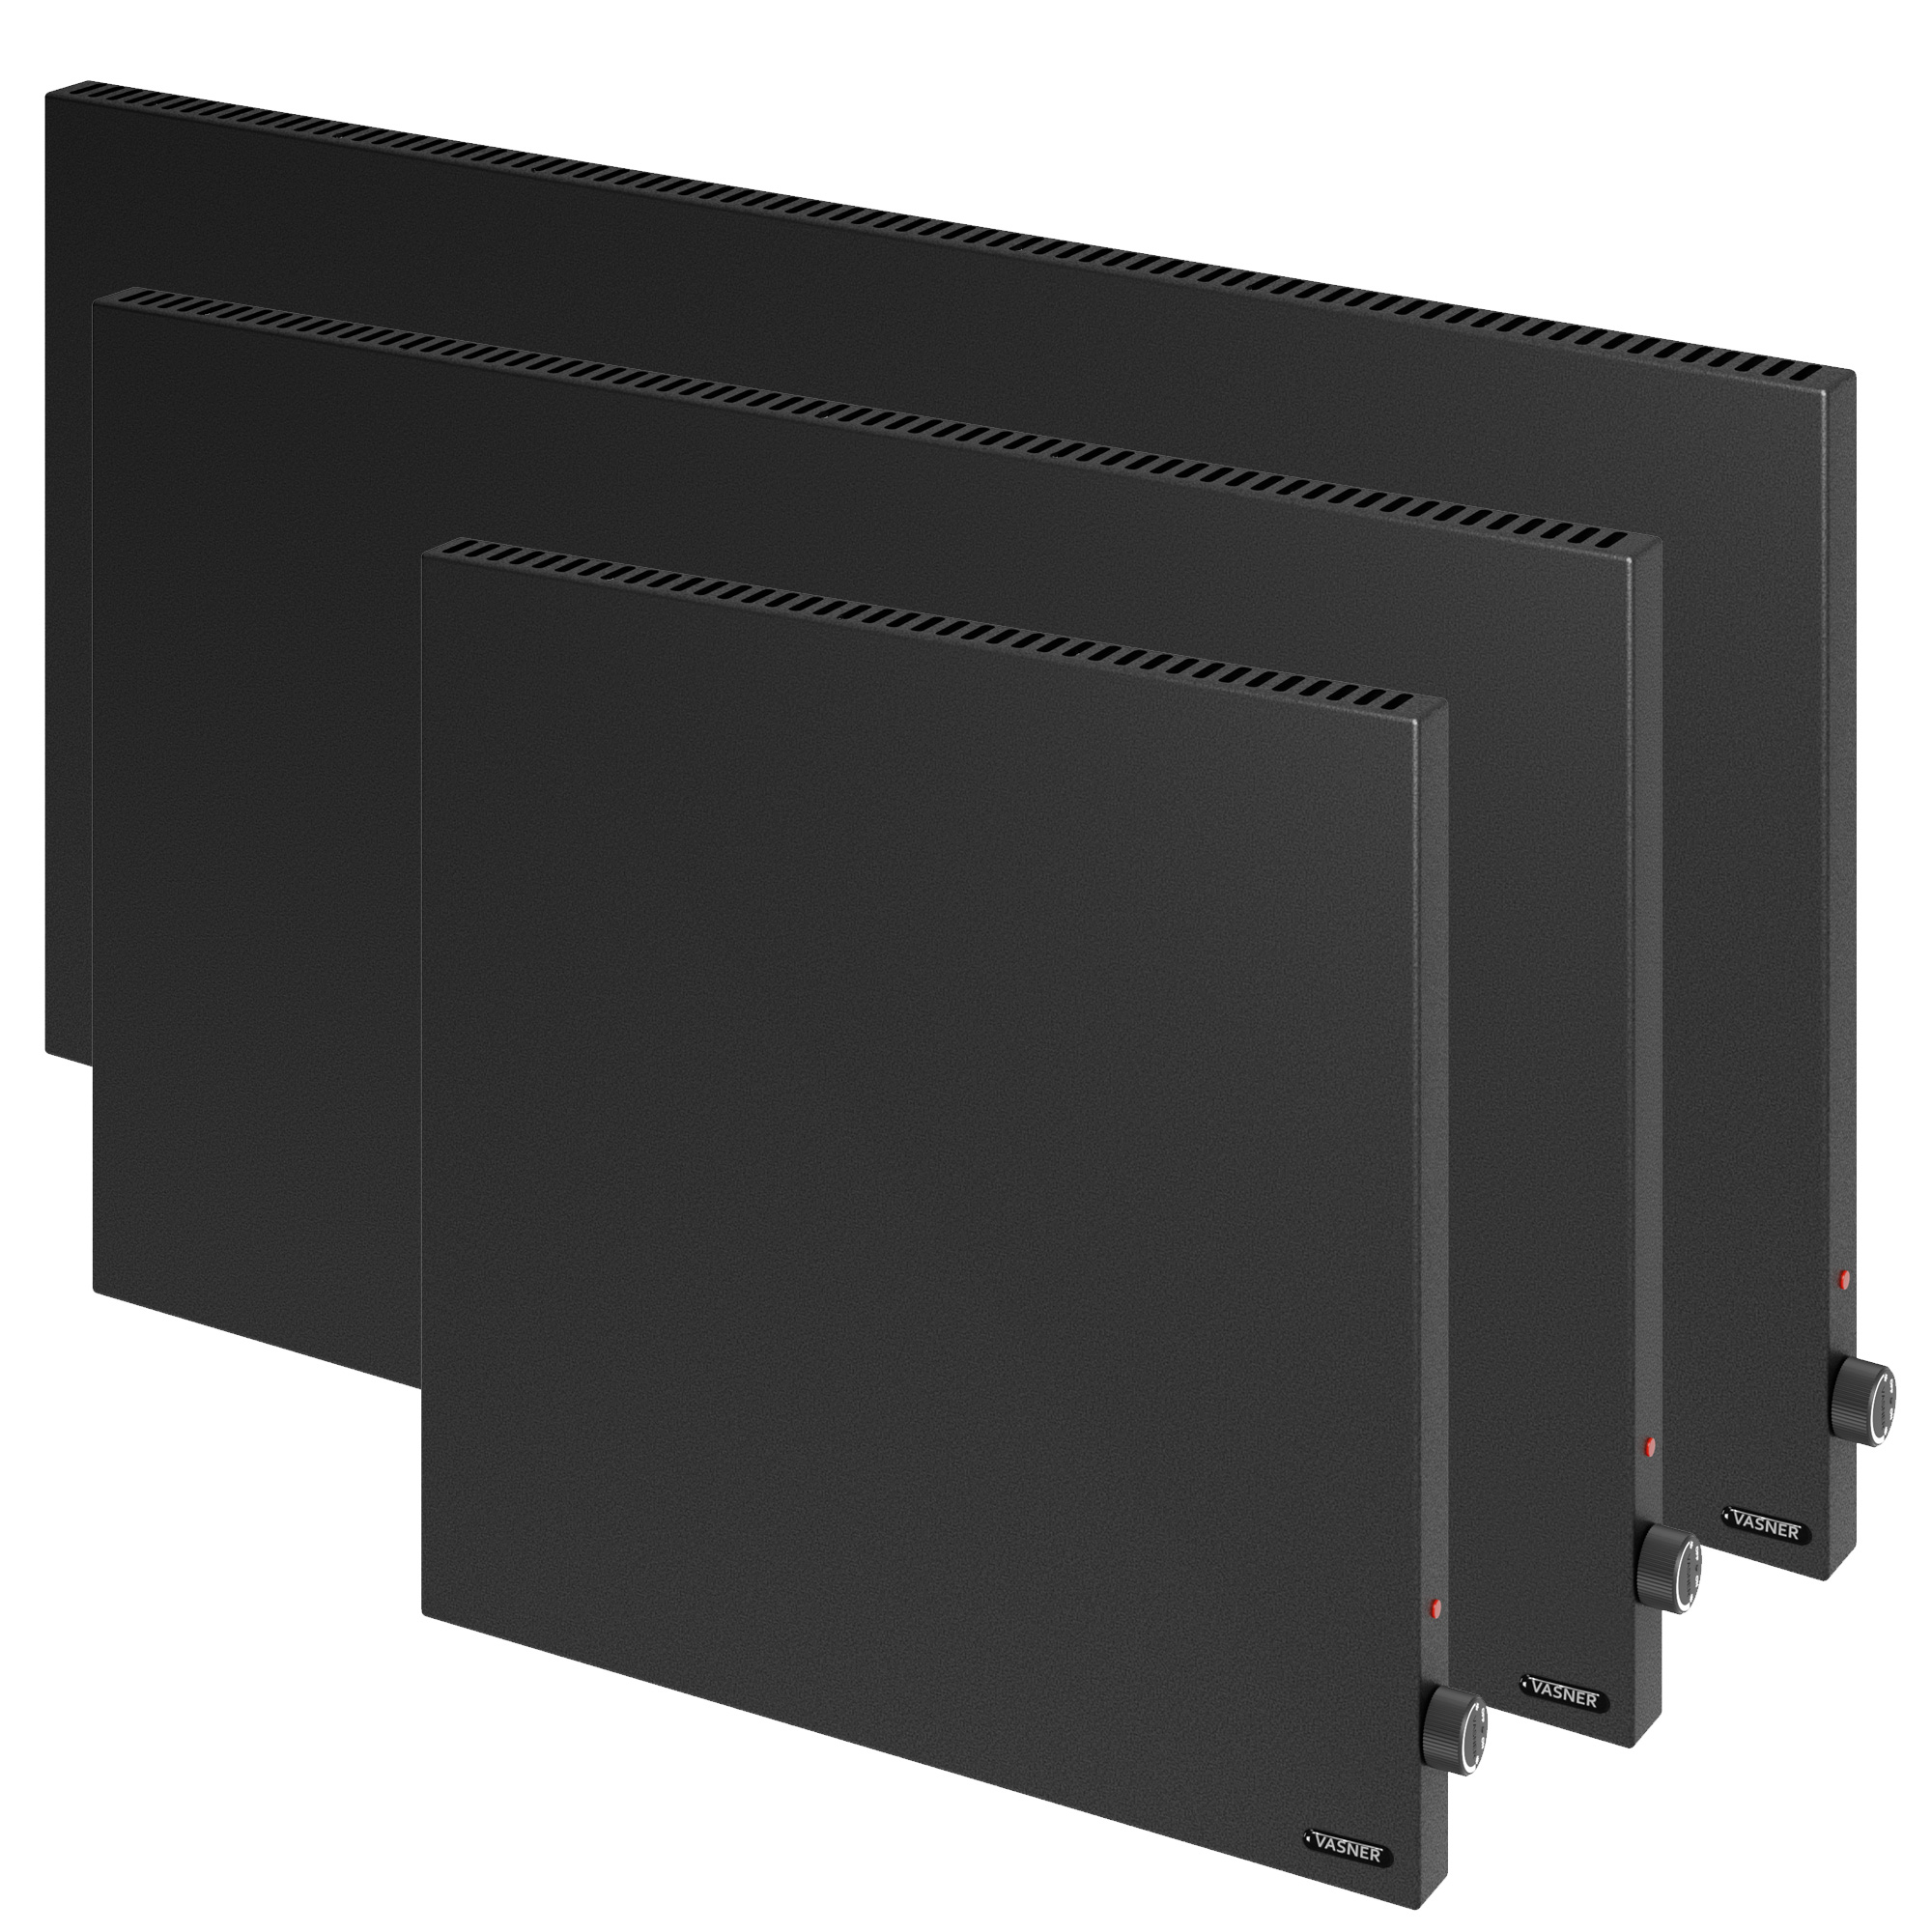 Black hybrid heating panel with output 600 - 1200 watts